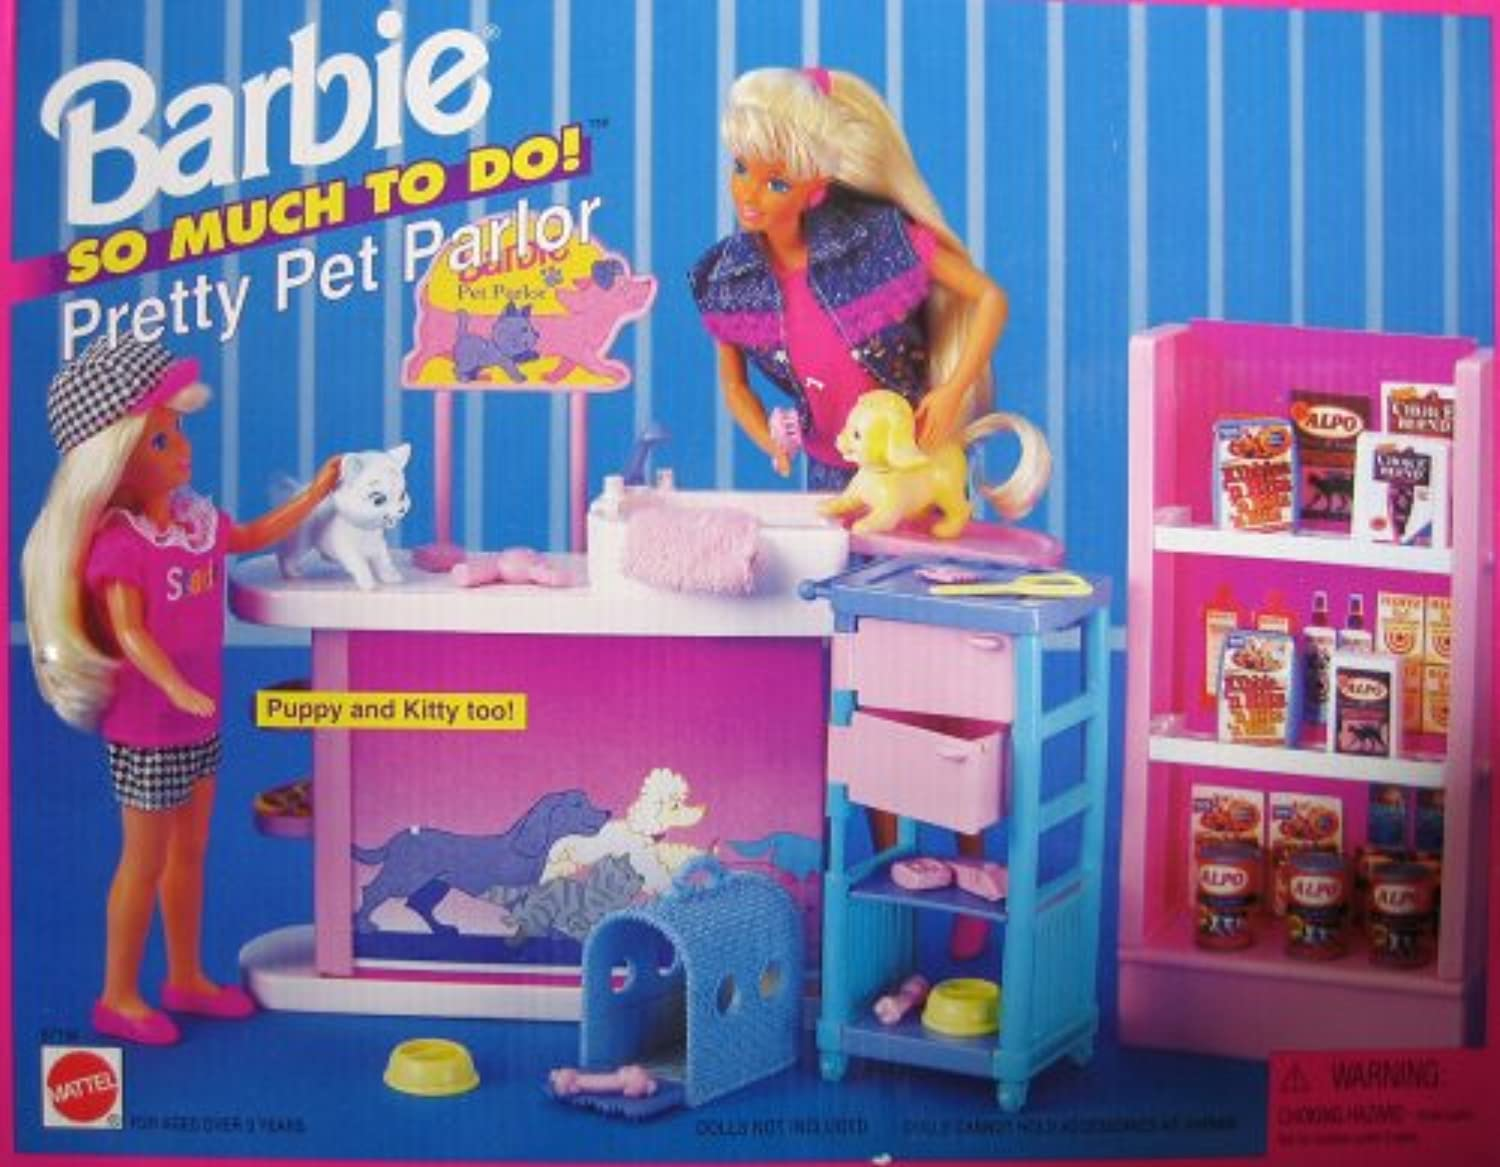 Barbie So Much to do Dining Room Spielzeug-Set (1995arcotoys, Mattel)